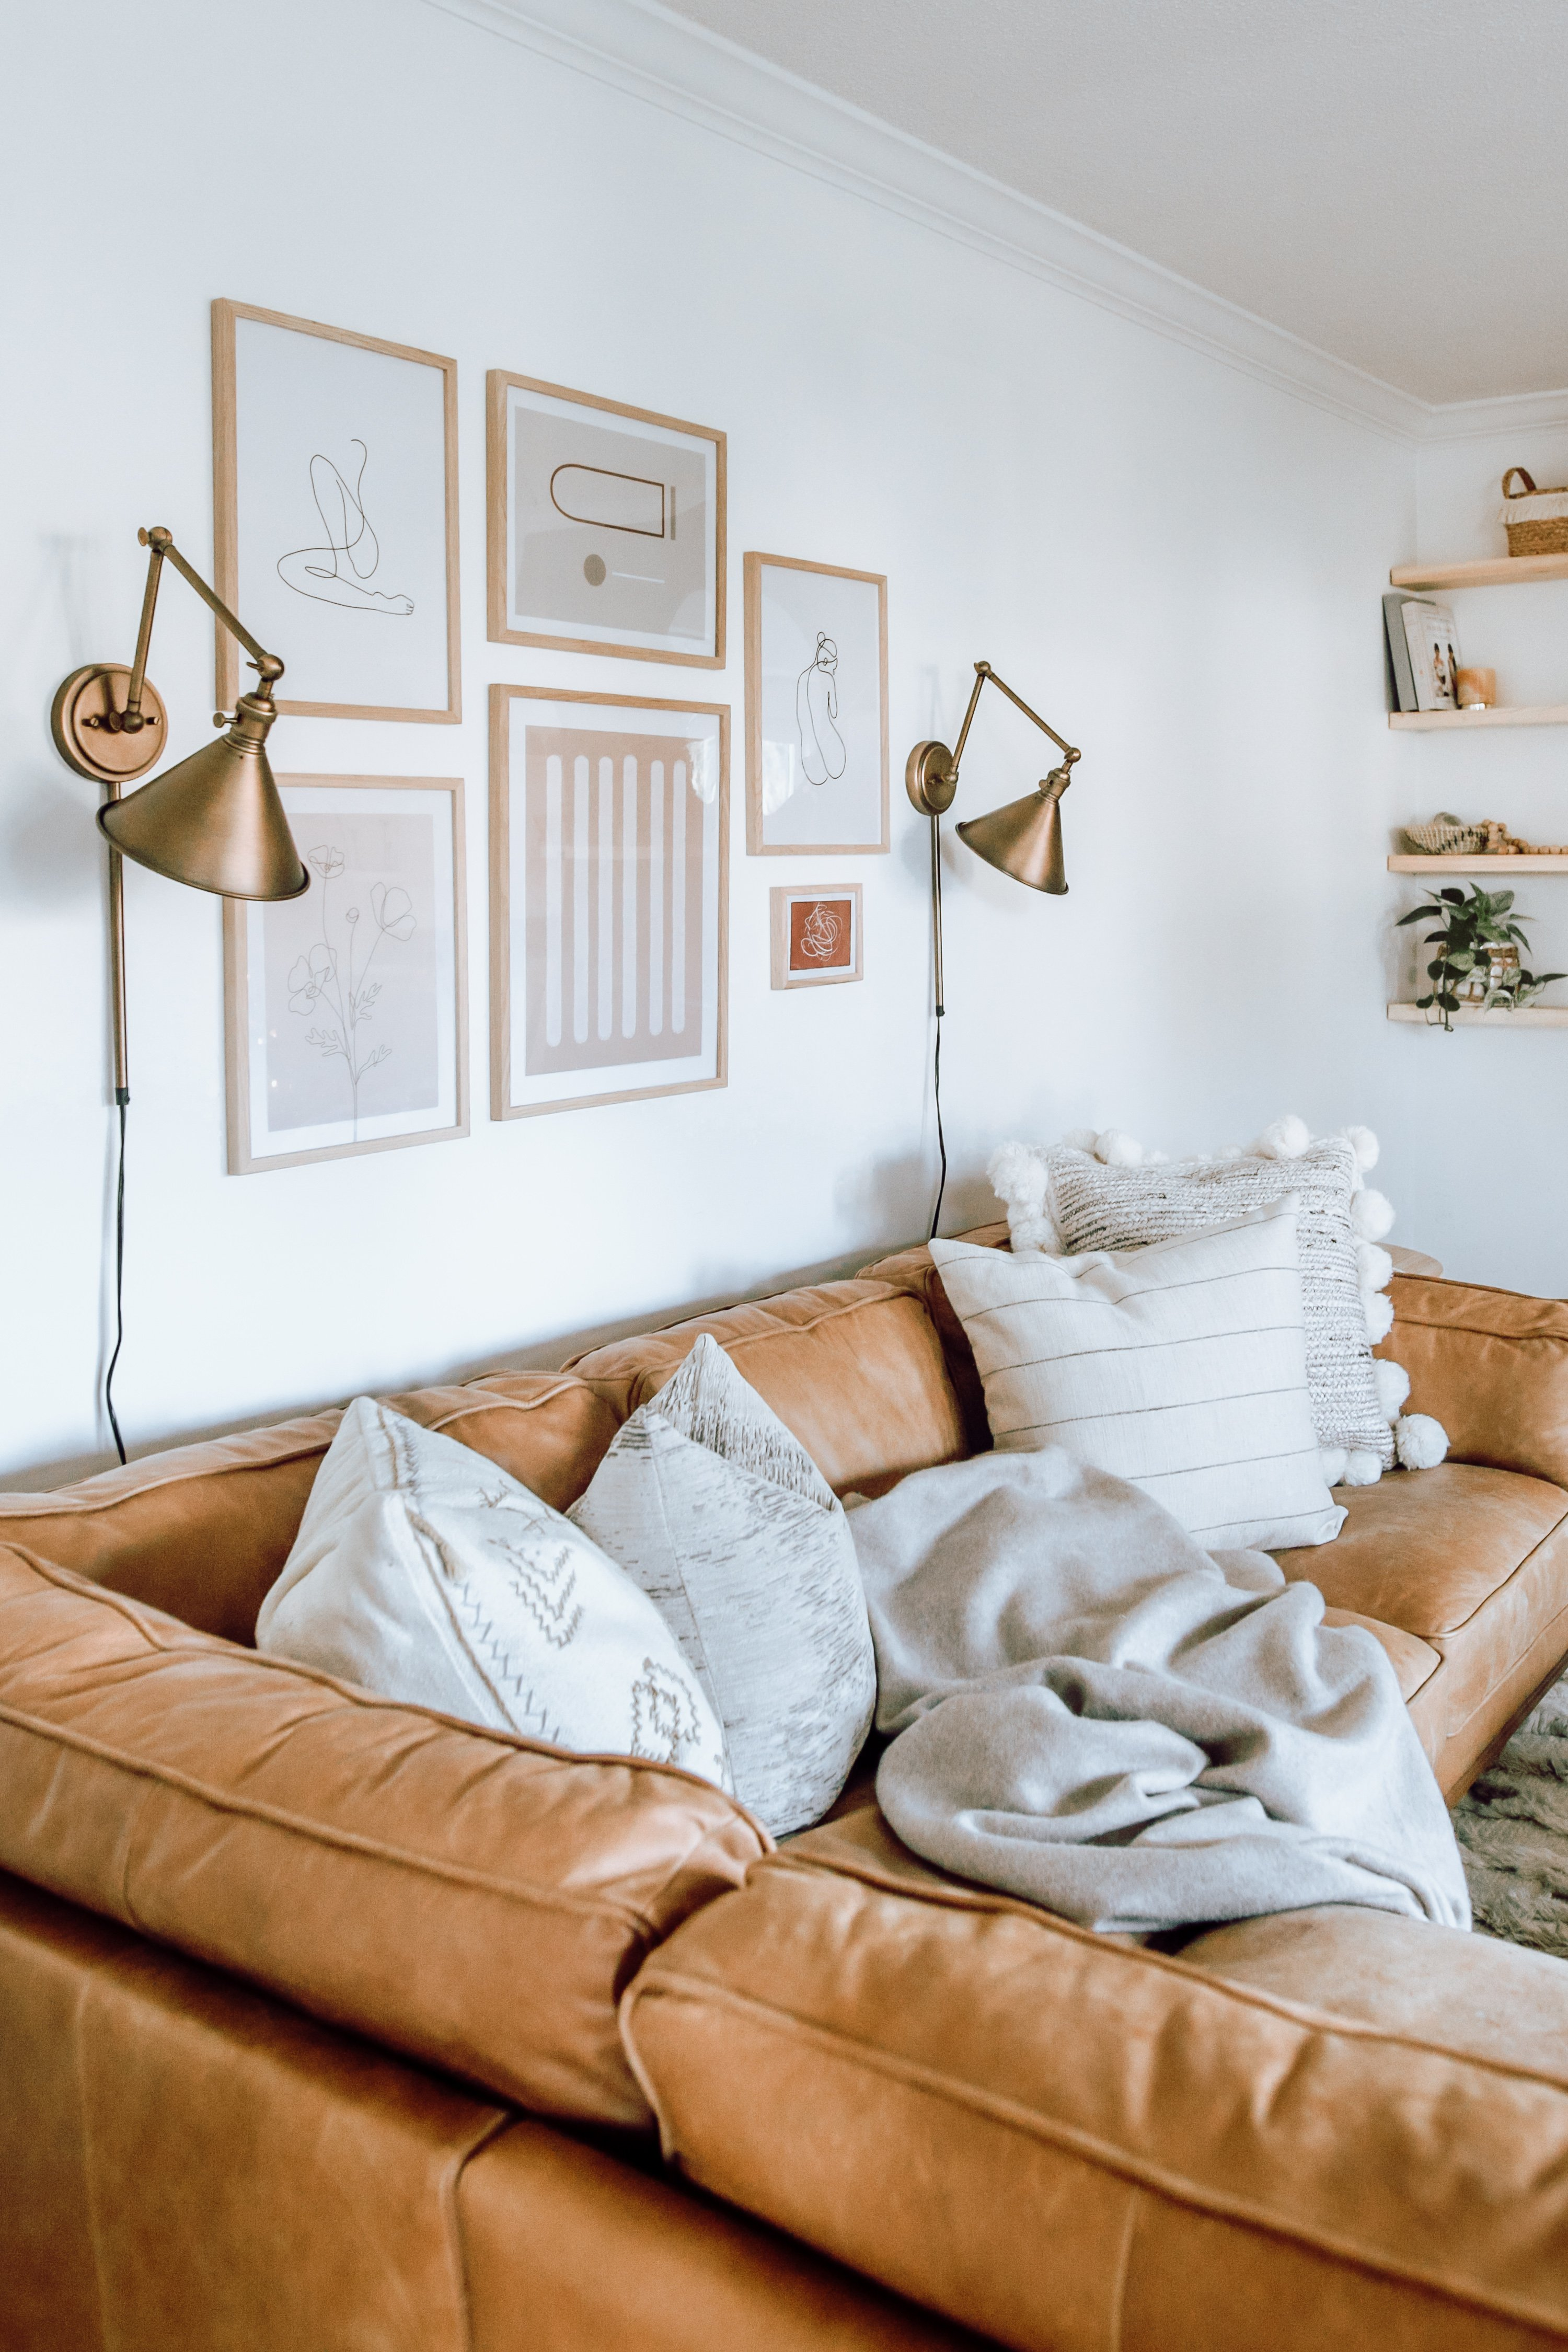 Our Sconce Feature Wall and similar sconces for less. Wall lamps that don't need to be hardwired. Also how to style them with a photo wall.